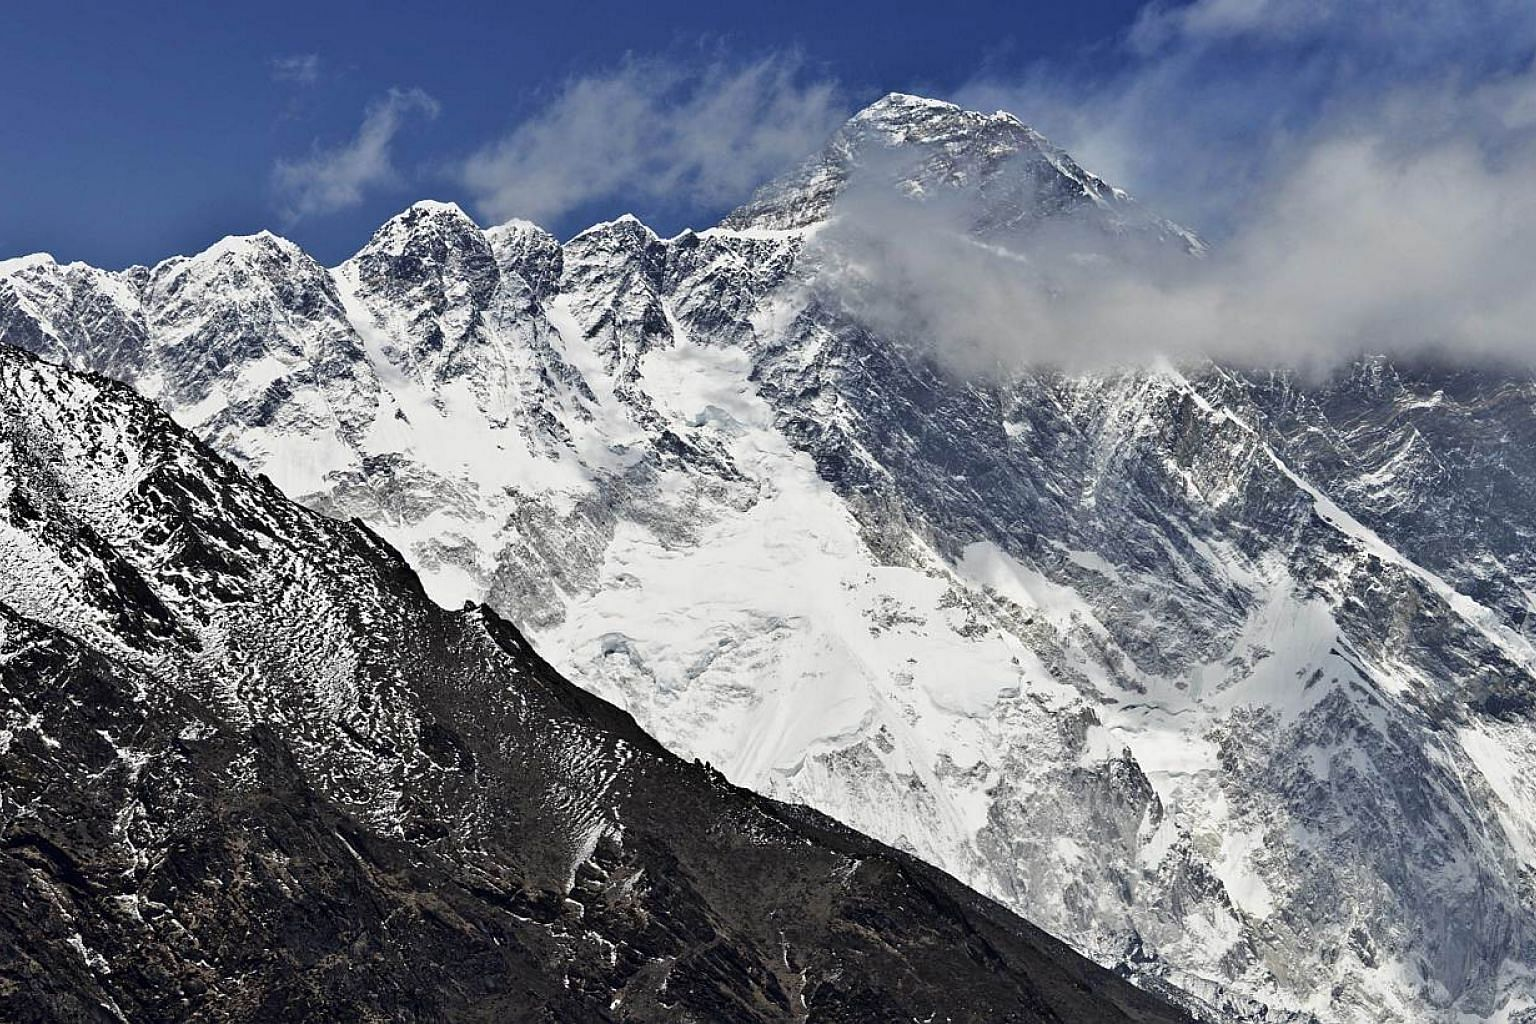 A view of Mount Everest (background) towering over the Nupse-Lohtse massif (foreground) from the village of Tembuche in the Khumbu region of north-eastern Nepal on April 20, 2015. -- PHOTO: AFP